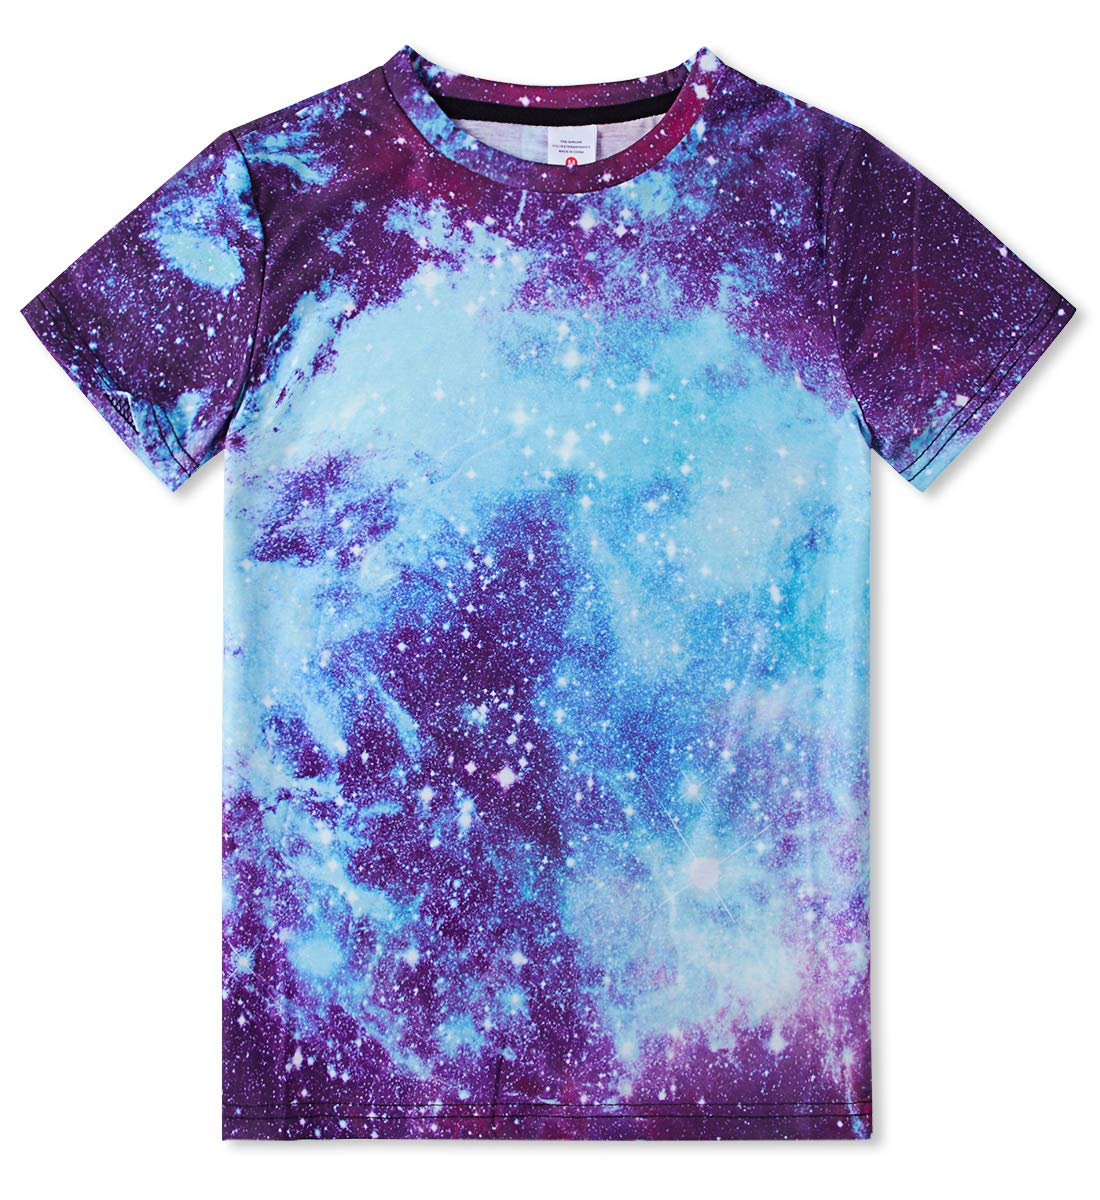 RAISEVERN 3D Printed Galaxy Tshirts Summer Casual Short Sleeve Tees T Shirt for Boys Girls Small